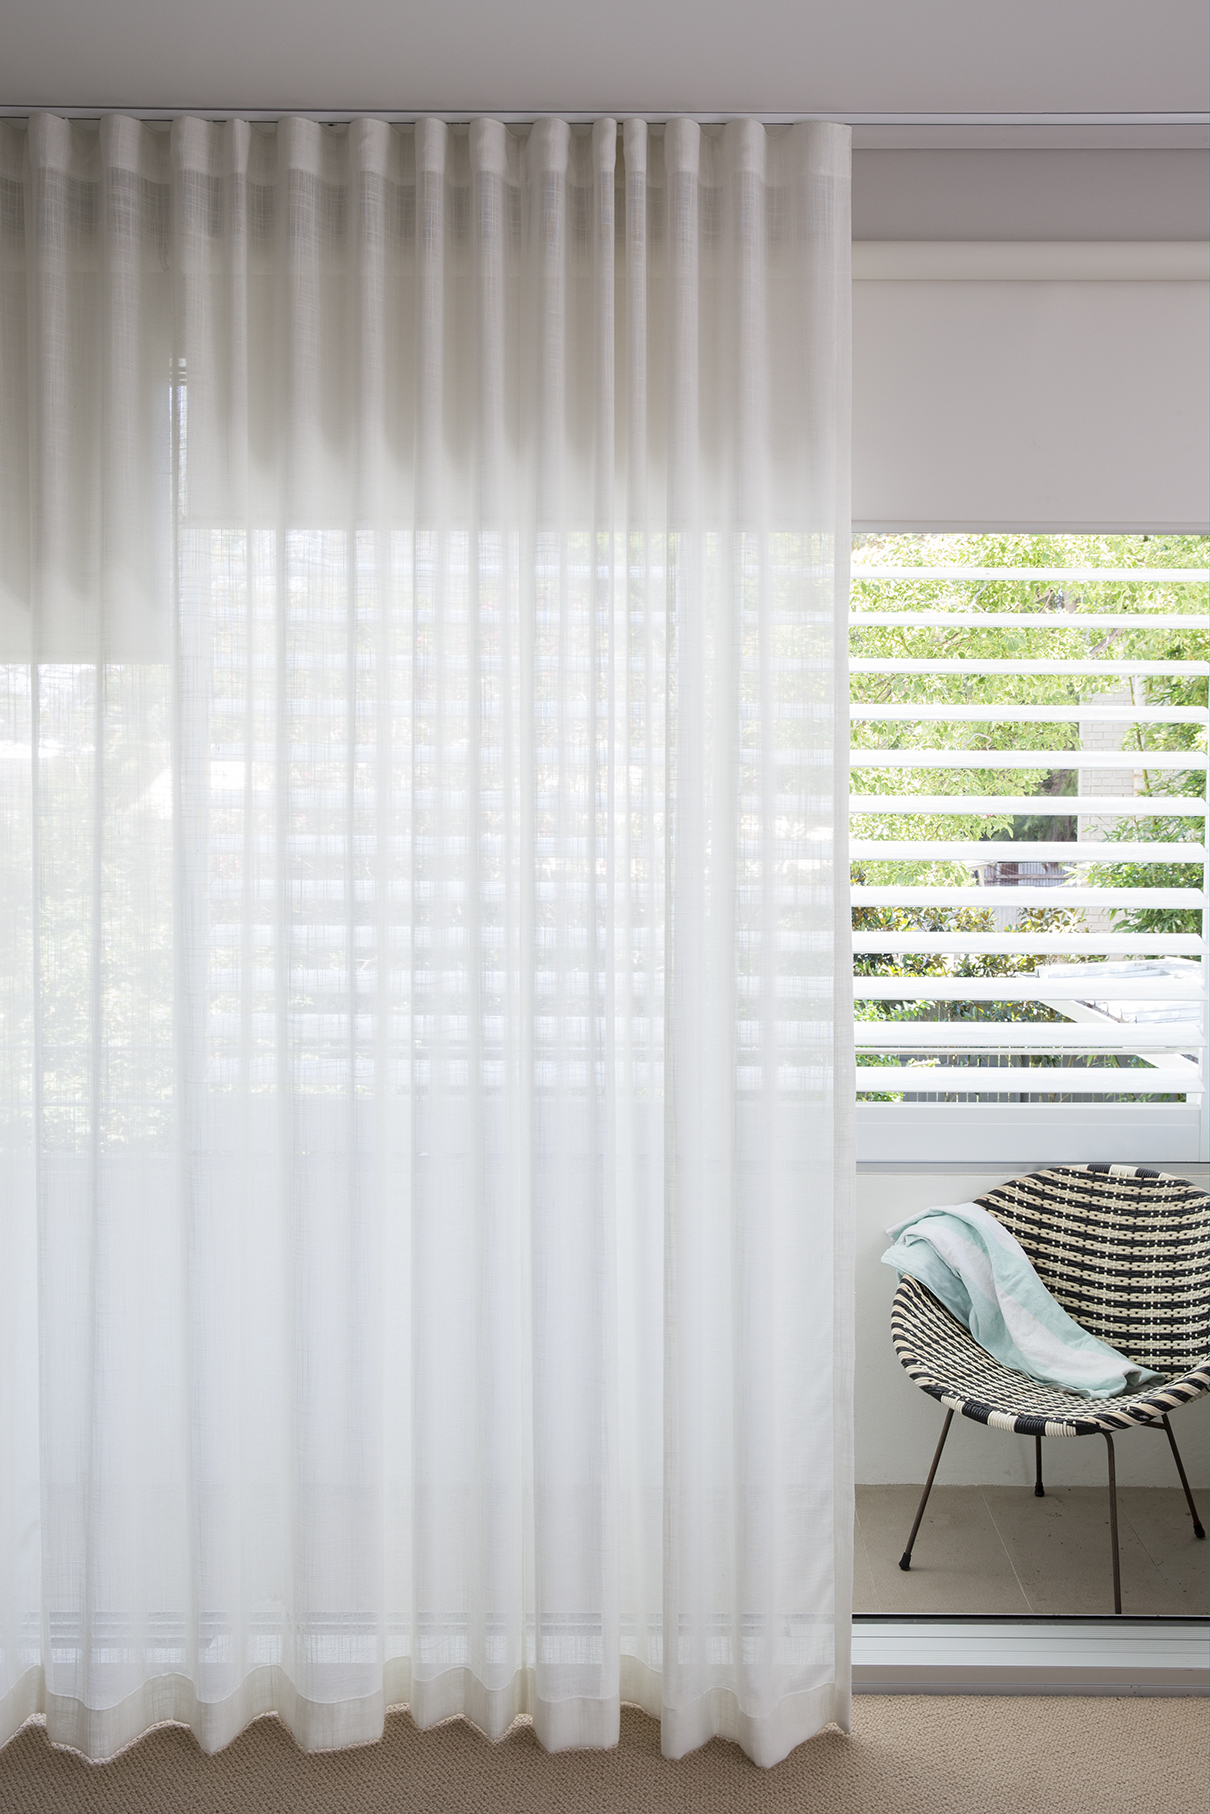 Interior design curtains blinds shutters and awnings sydney shakespeare design - Curtains designs images ...